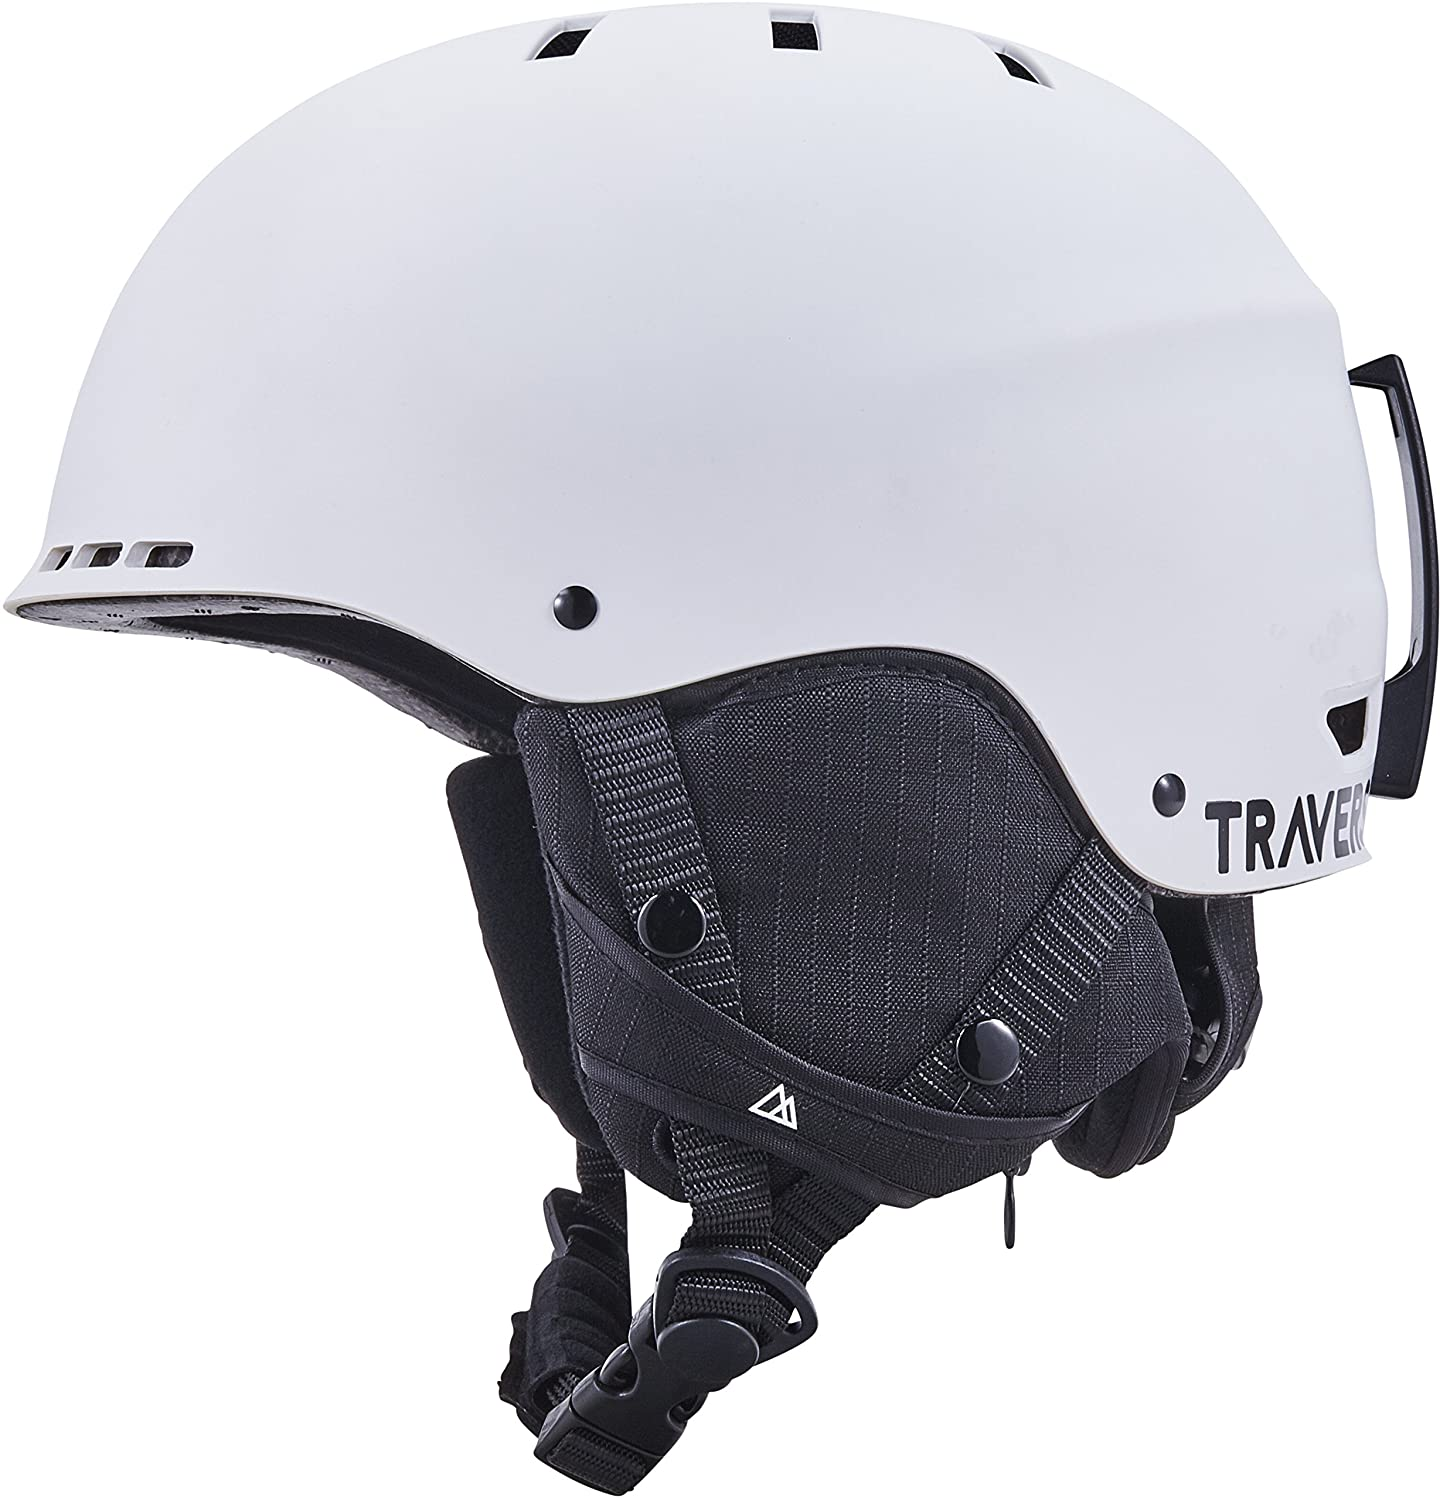 Retrospec Traverse H2 2 in 1 Convertible Helmet with 10 Vents